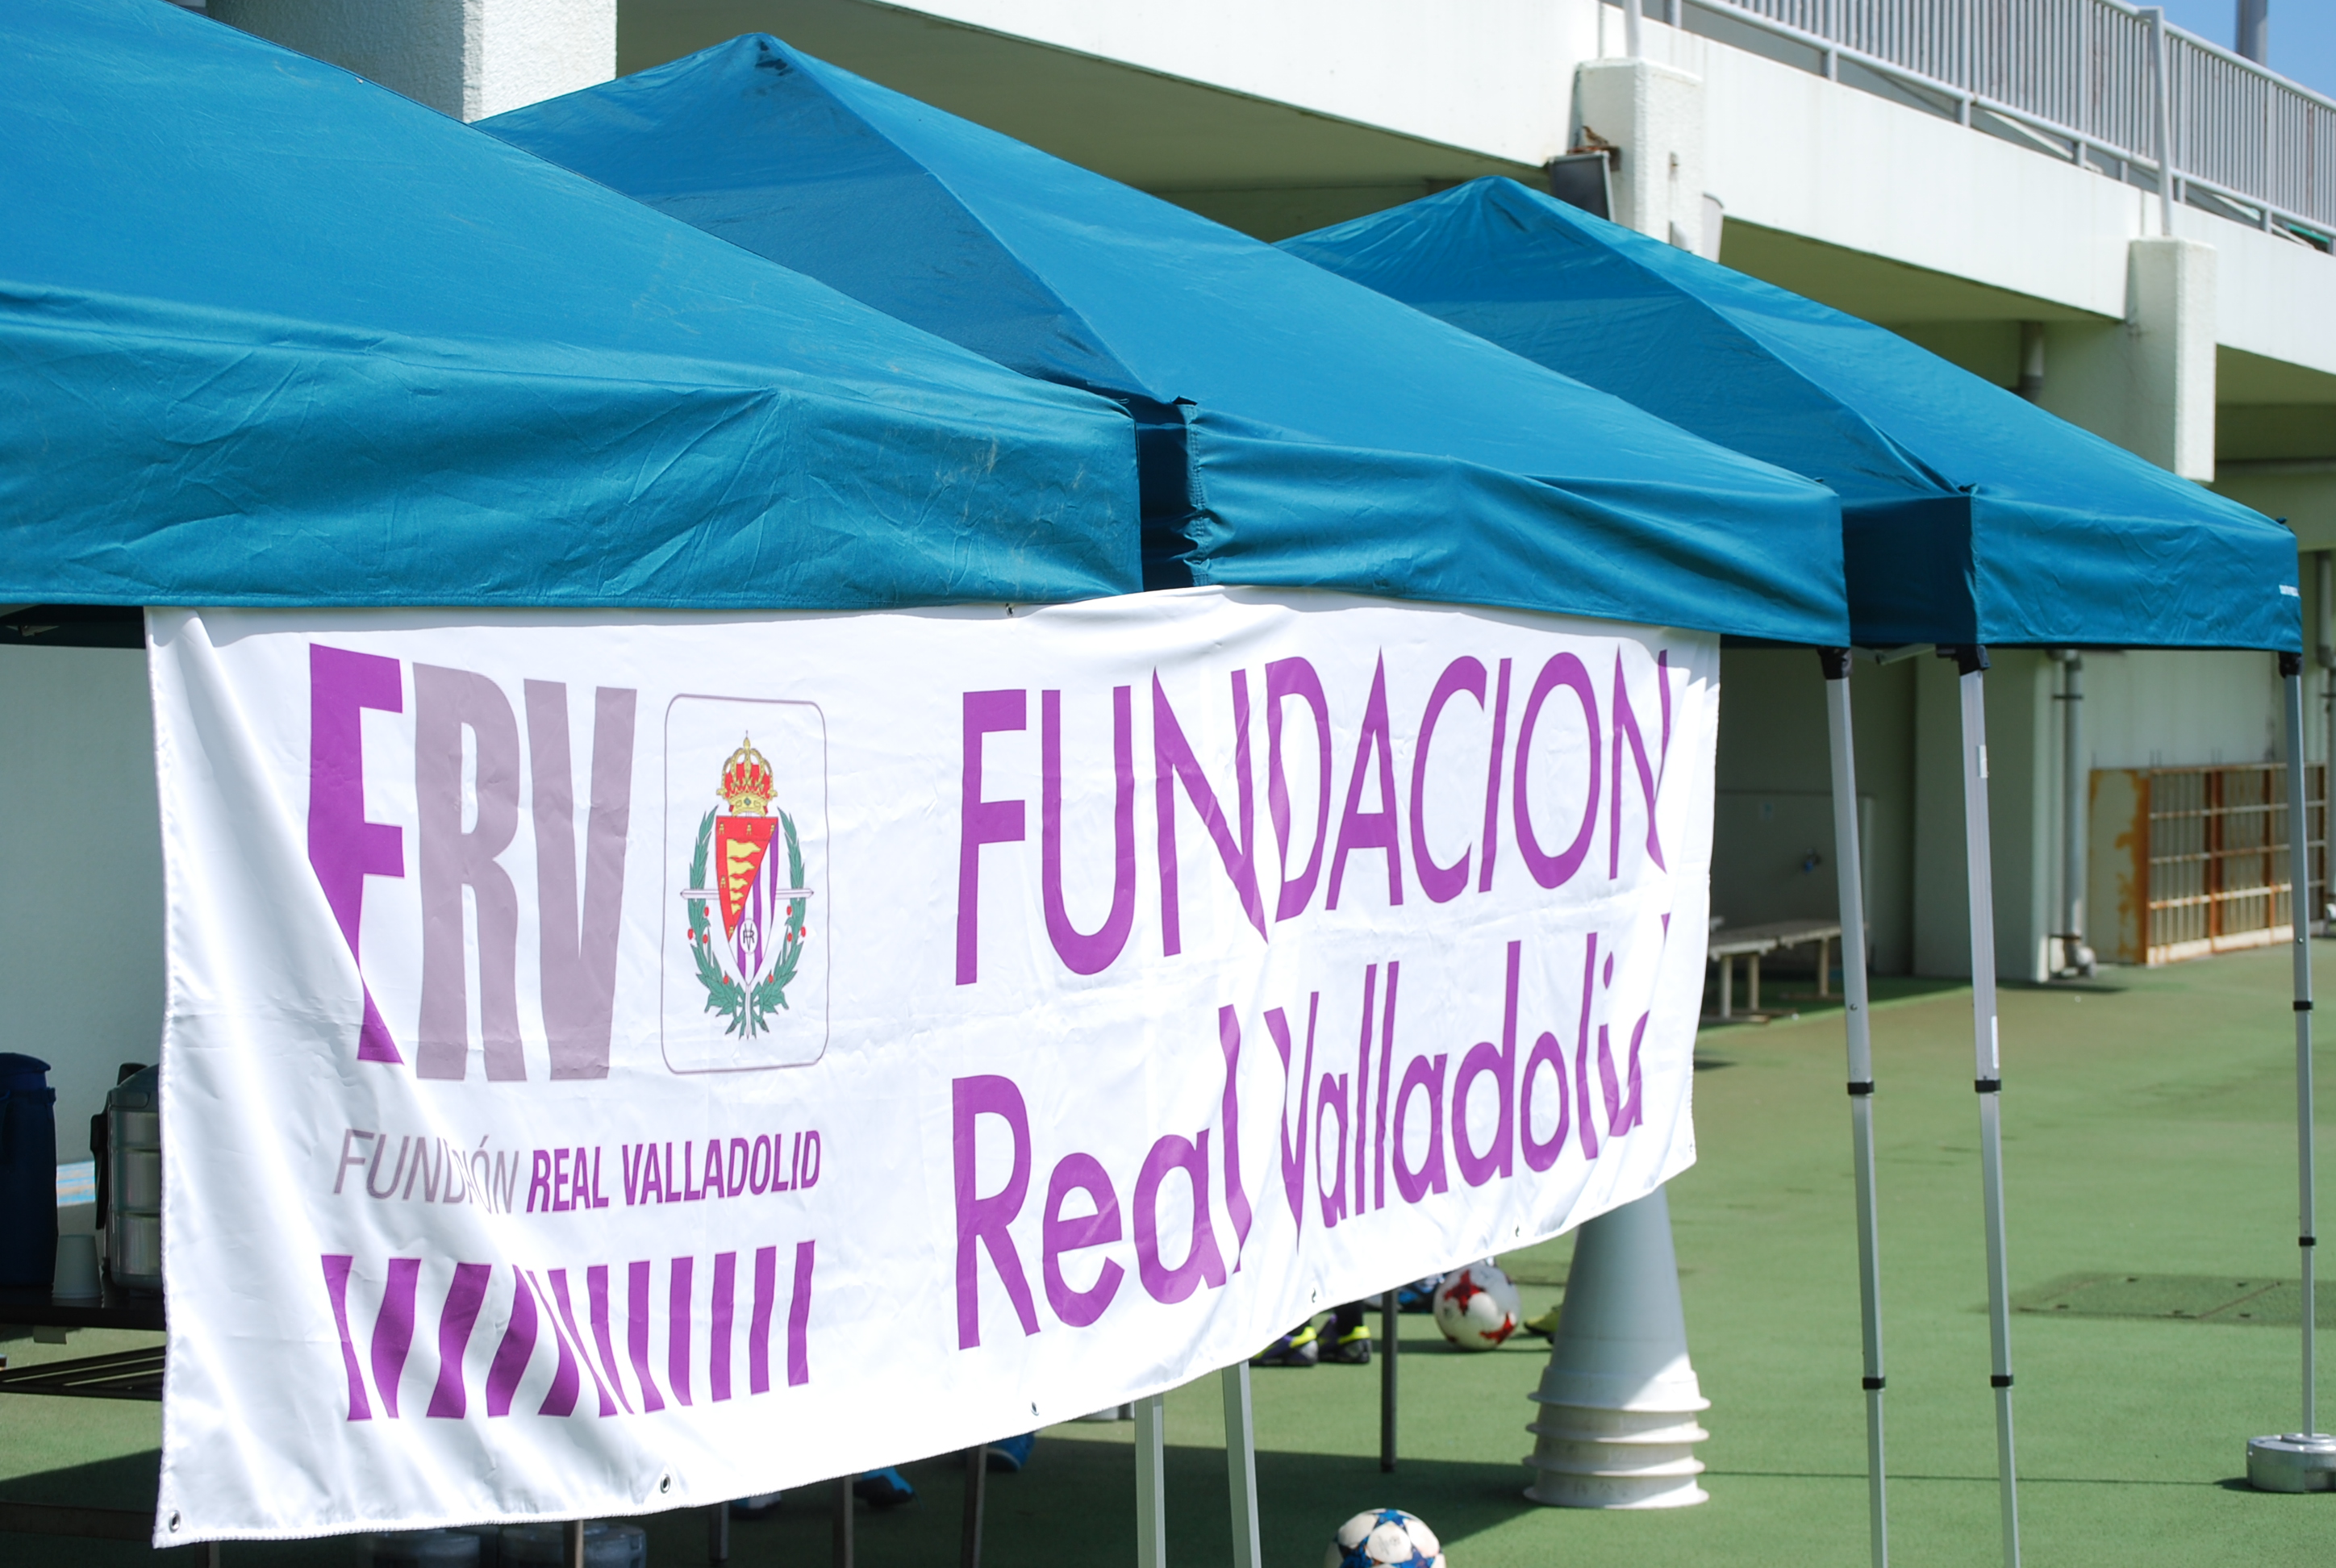 FUNDACION Real Valladolid